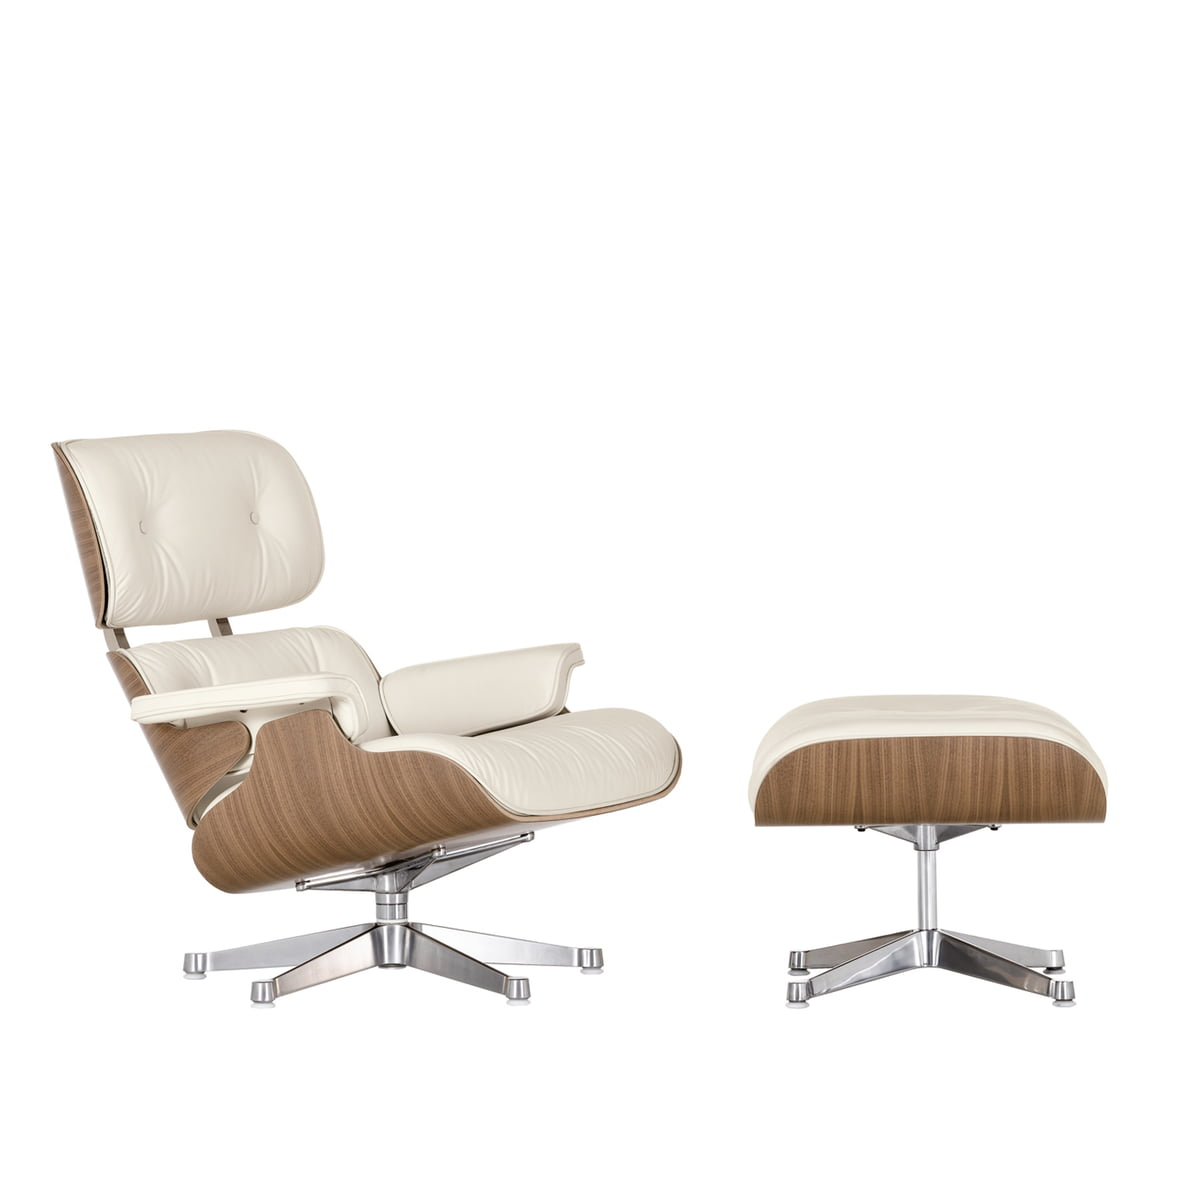 vitra eames lounge chair ottoman walnut white